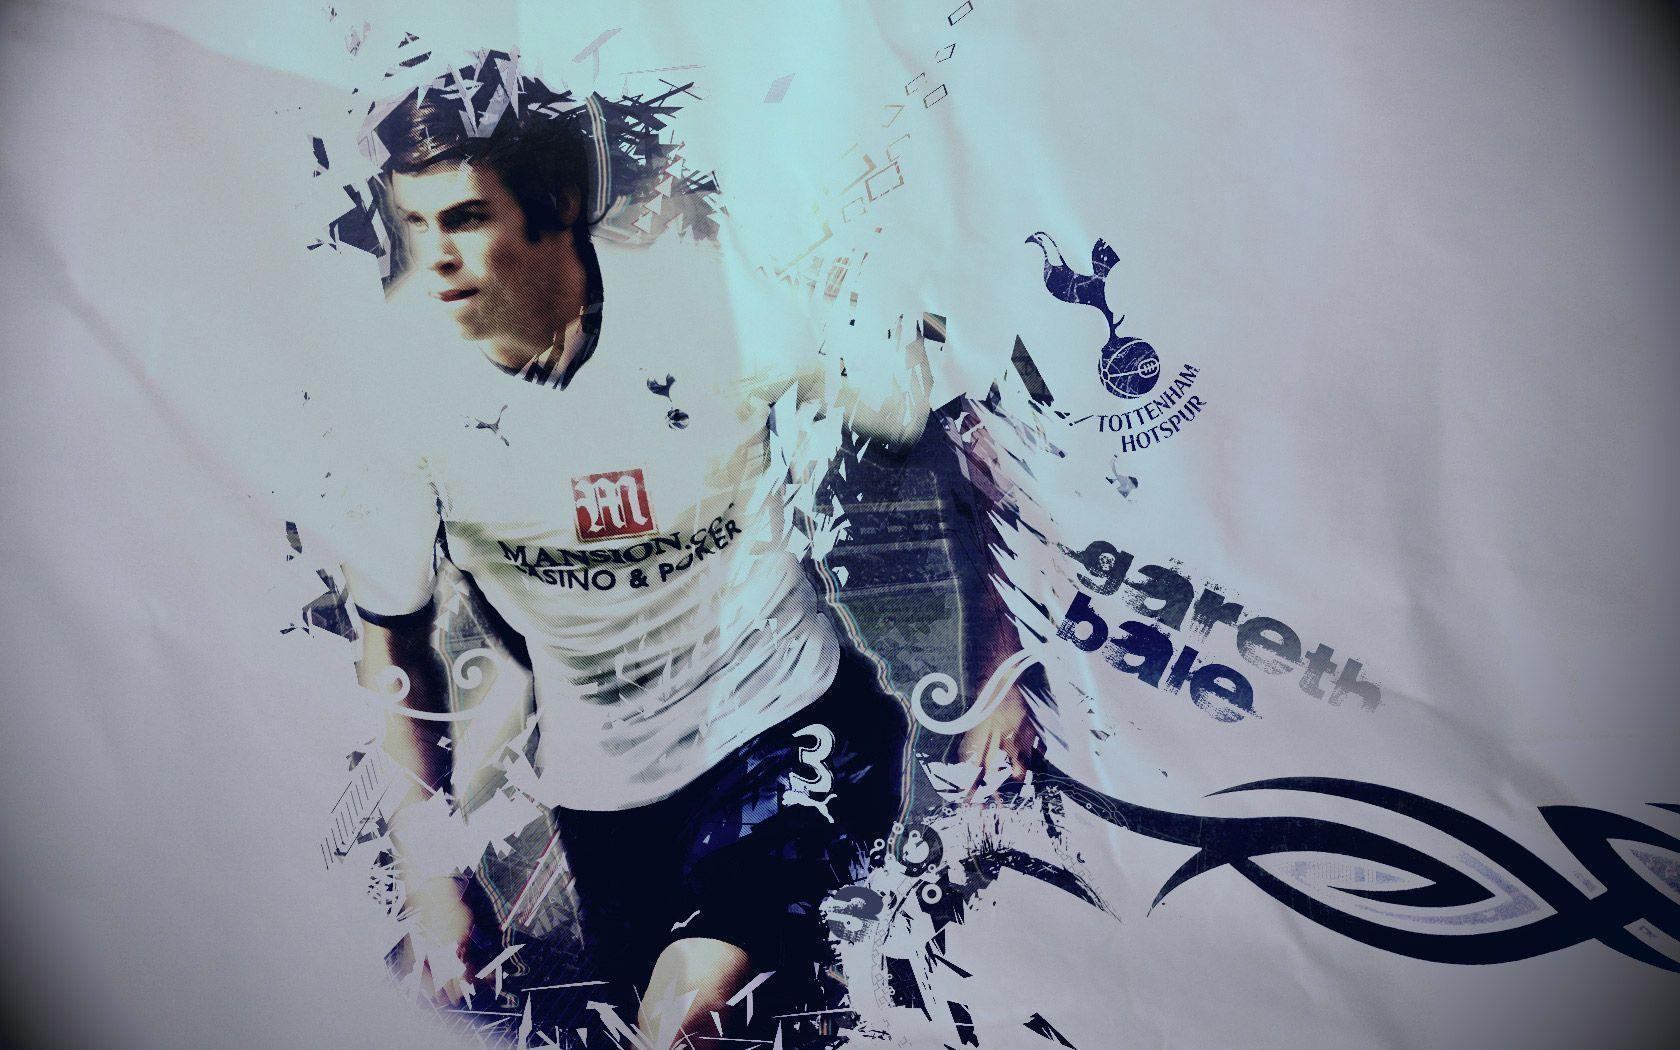 Gareth Bale Wallpapers | HD Wallpapers Base